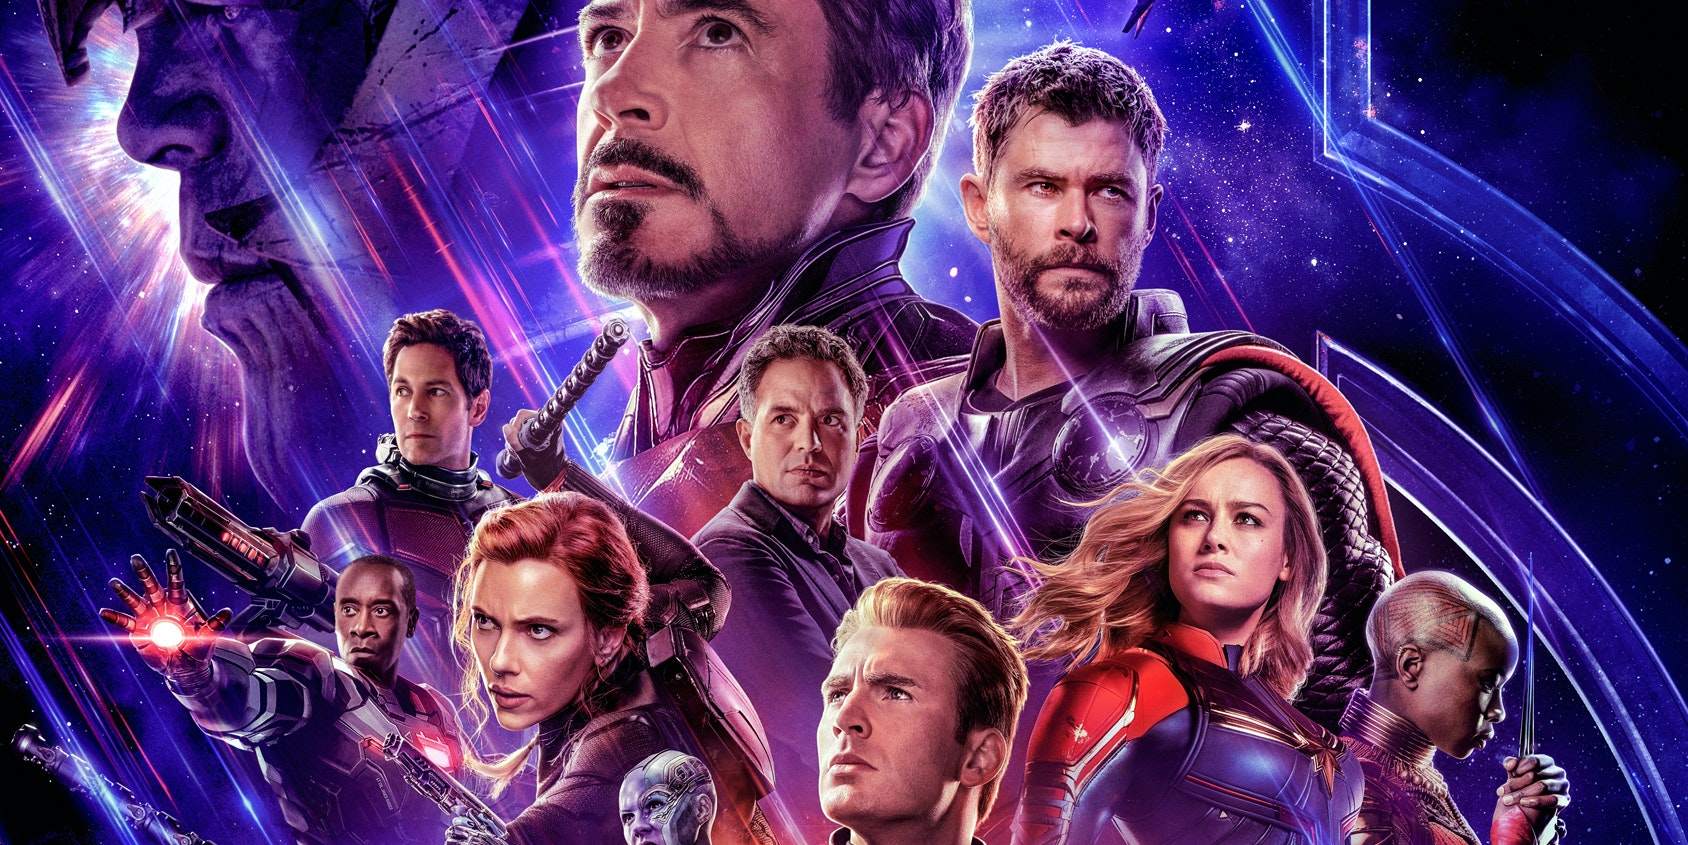 'Avengers: Endgame' Ticket Sales to Go on Sale Soon: How to Know First